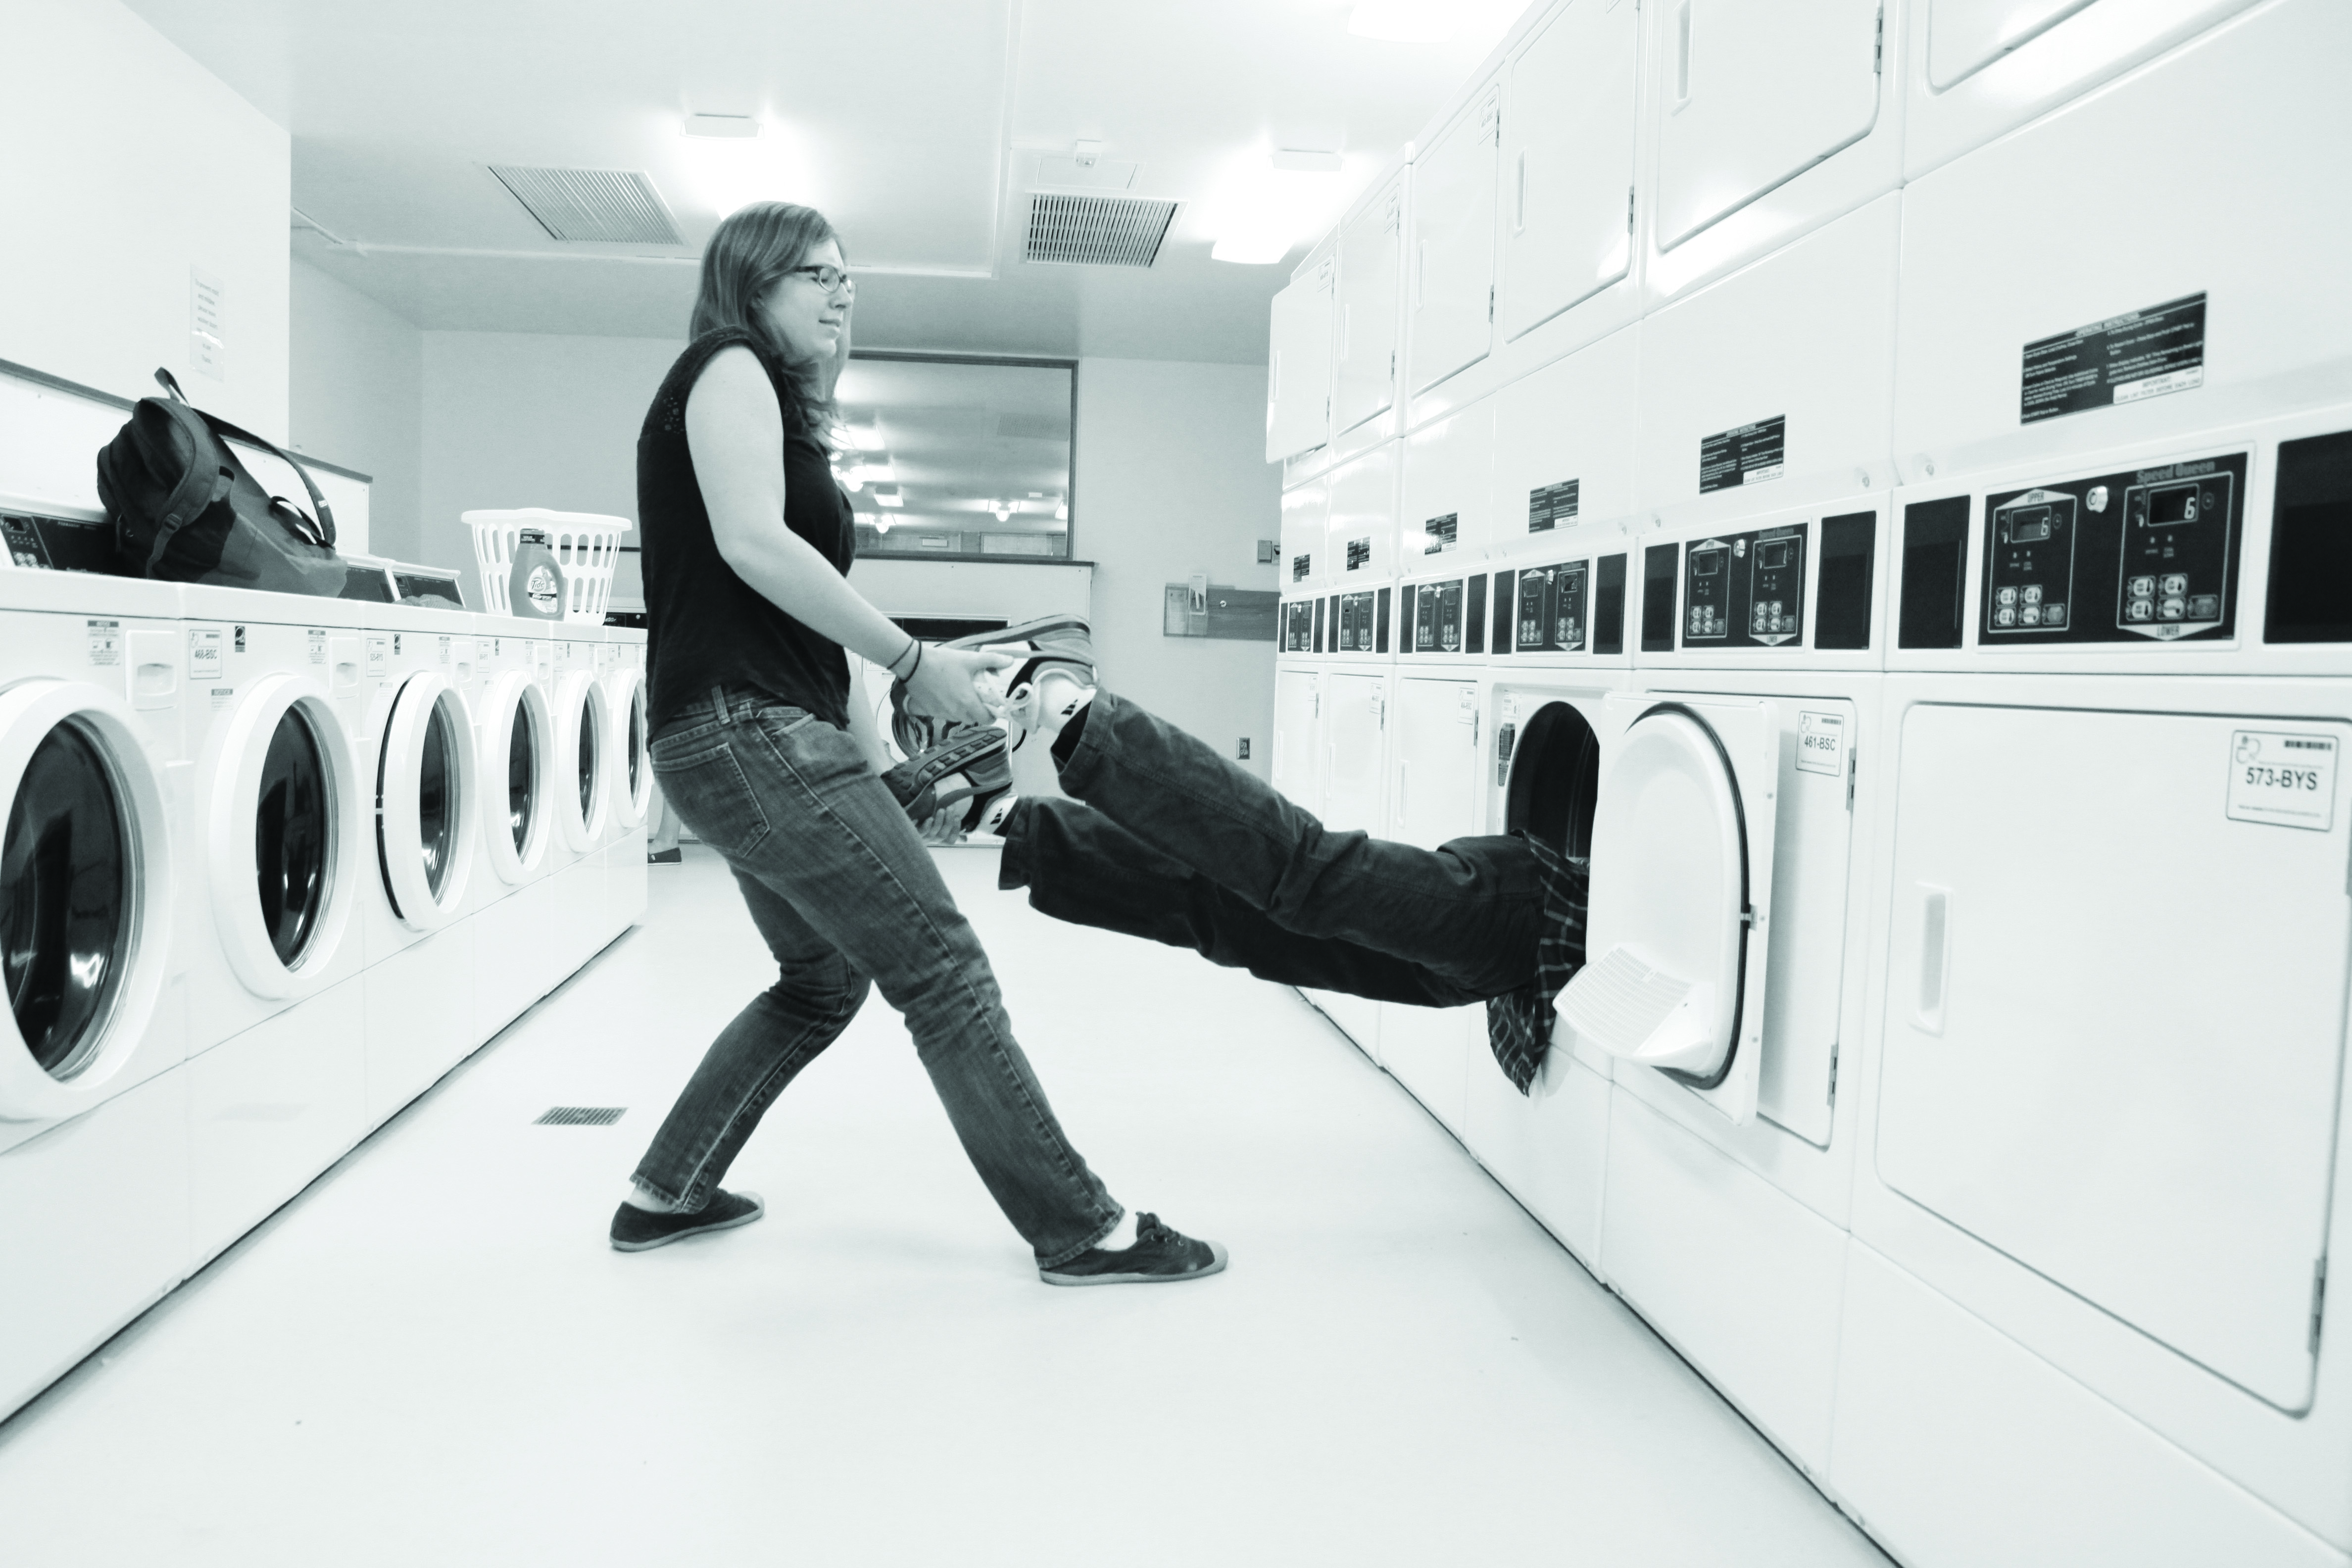 A student pushes another student head first into a washing machine